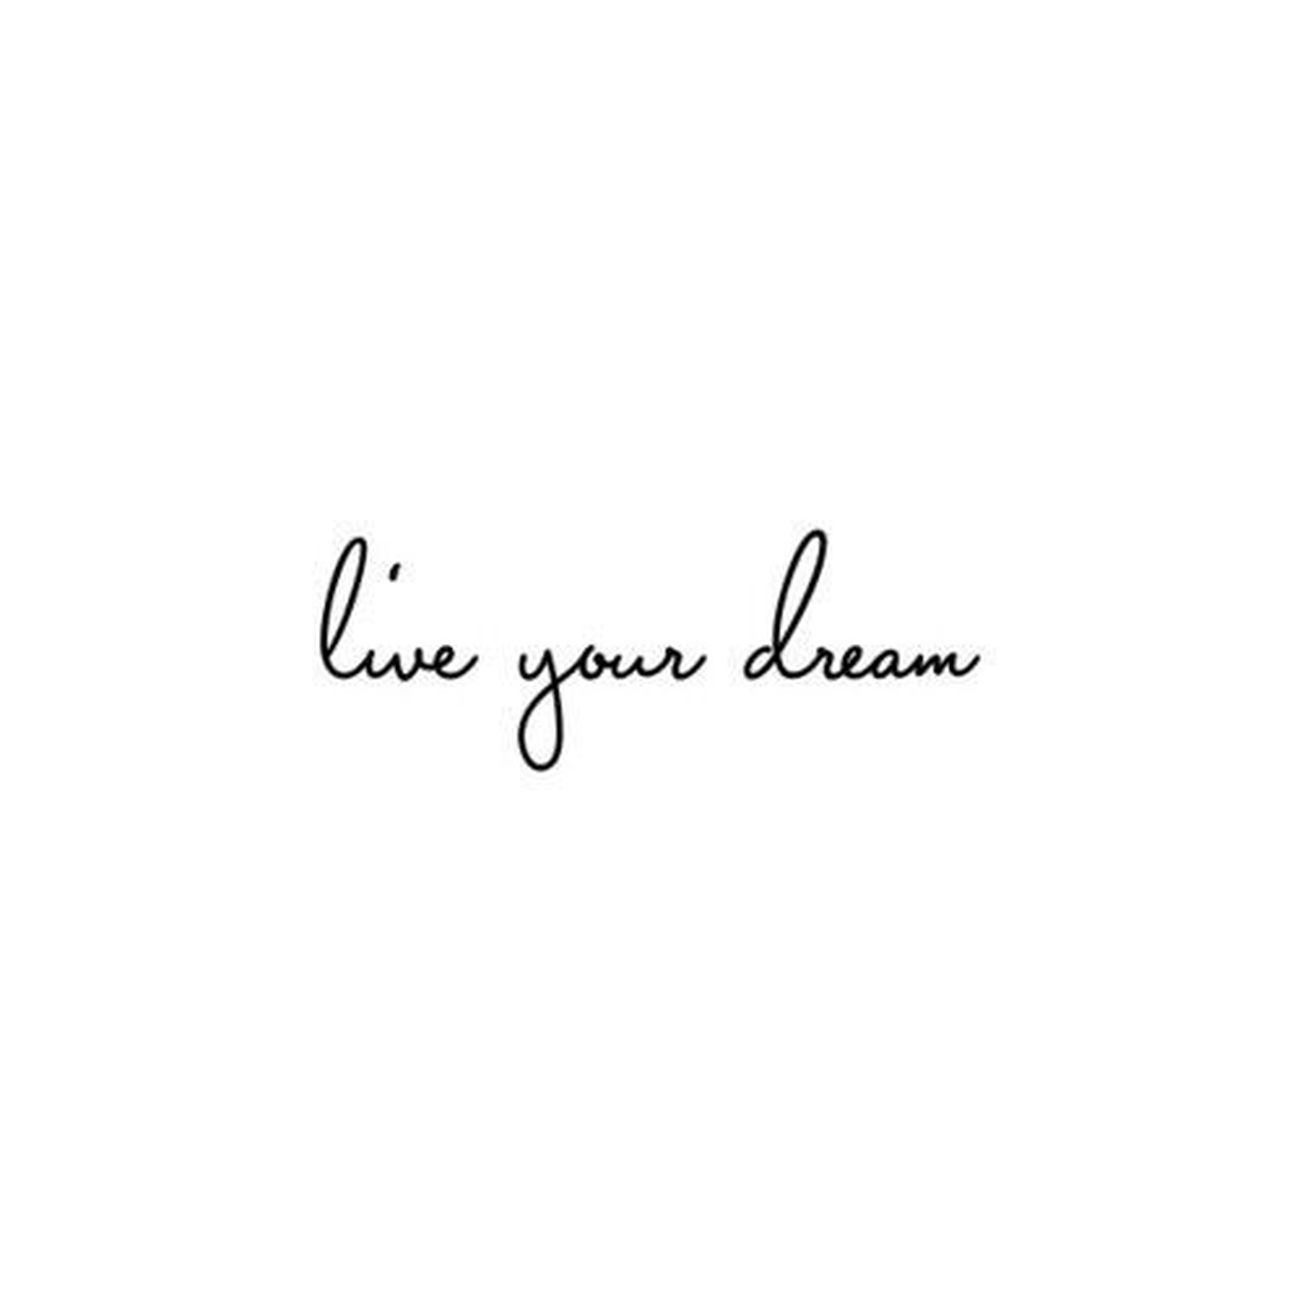 live your dream Dream Word Liveyoudream